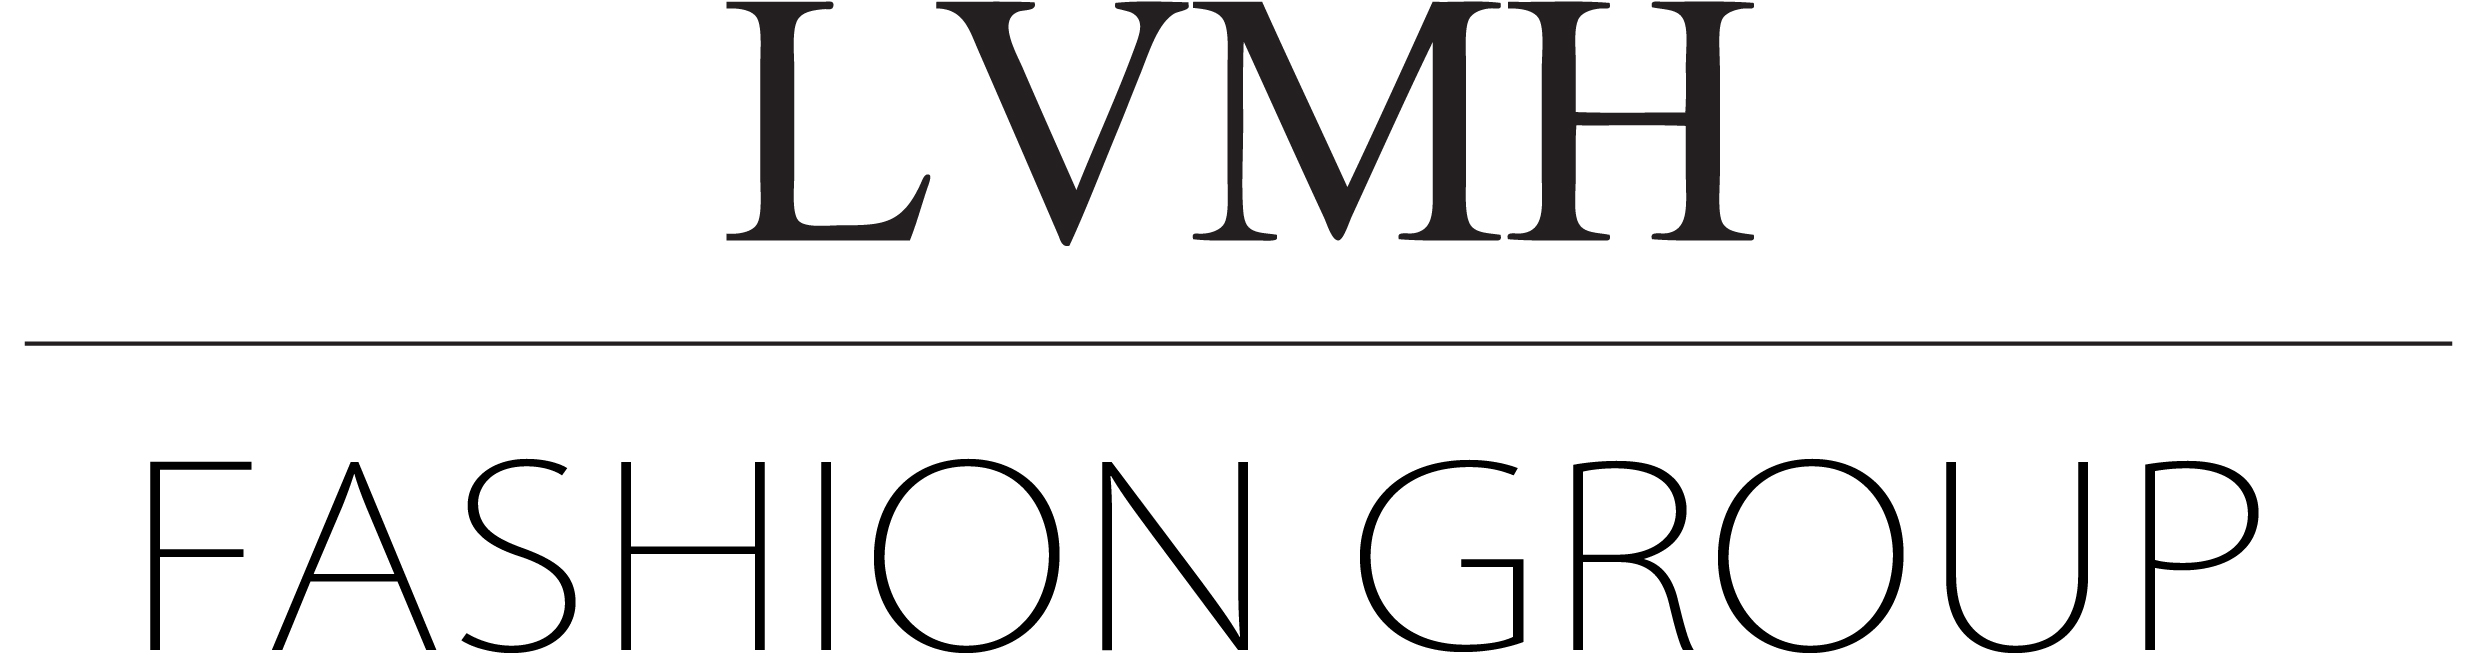 human resource management at lvmh group Lvmh has deployed the european model of human resource administration ie best fit model since in best fit model association recognize hr methodologies that fit their business eg business sector, work, size and structure of the association.